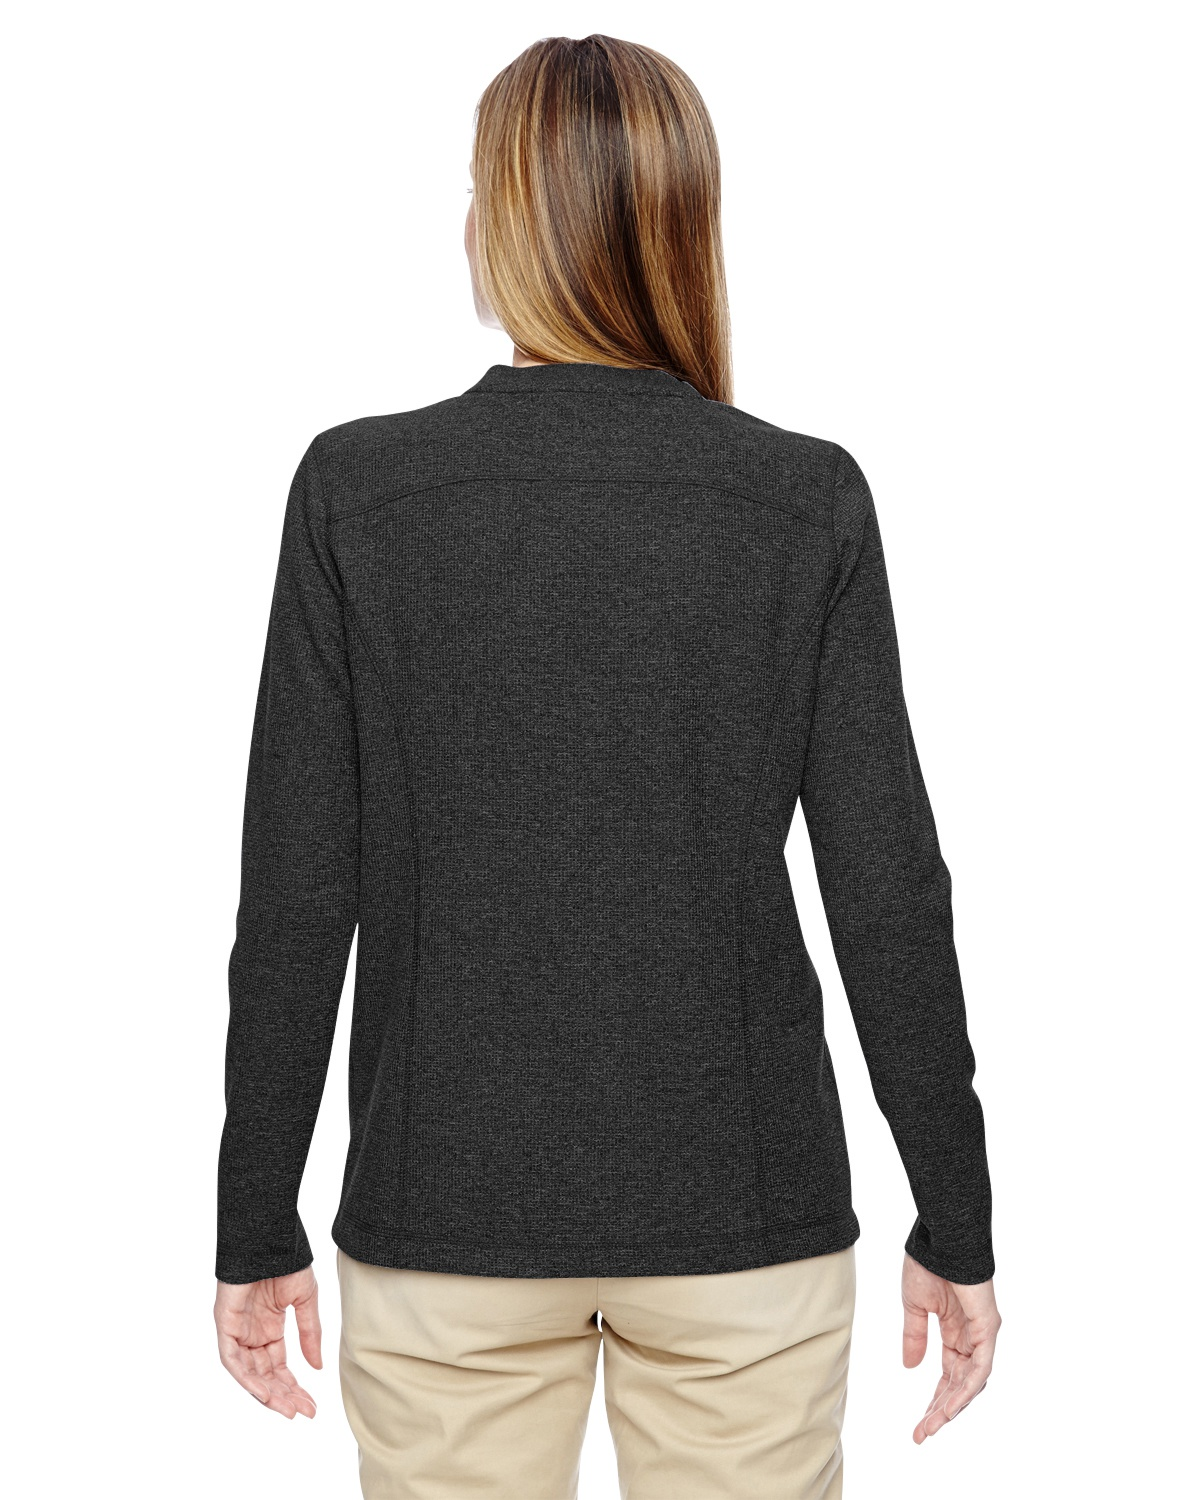 'Ash City - North End 78221 Ladies' Excursion Nomad Performance Waffle Henley'